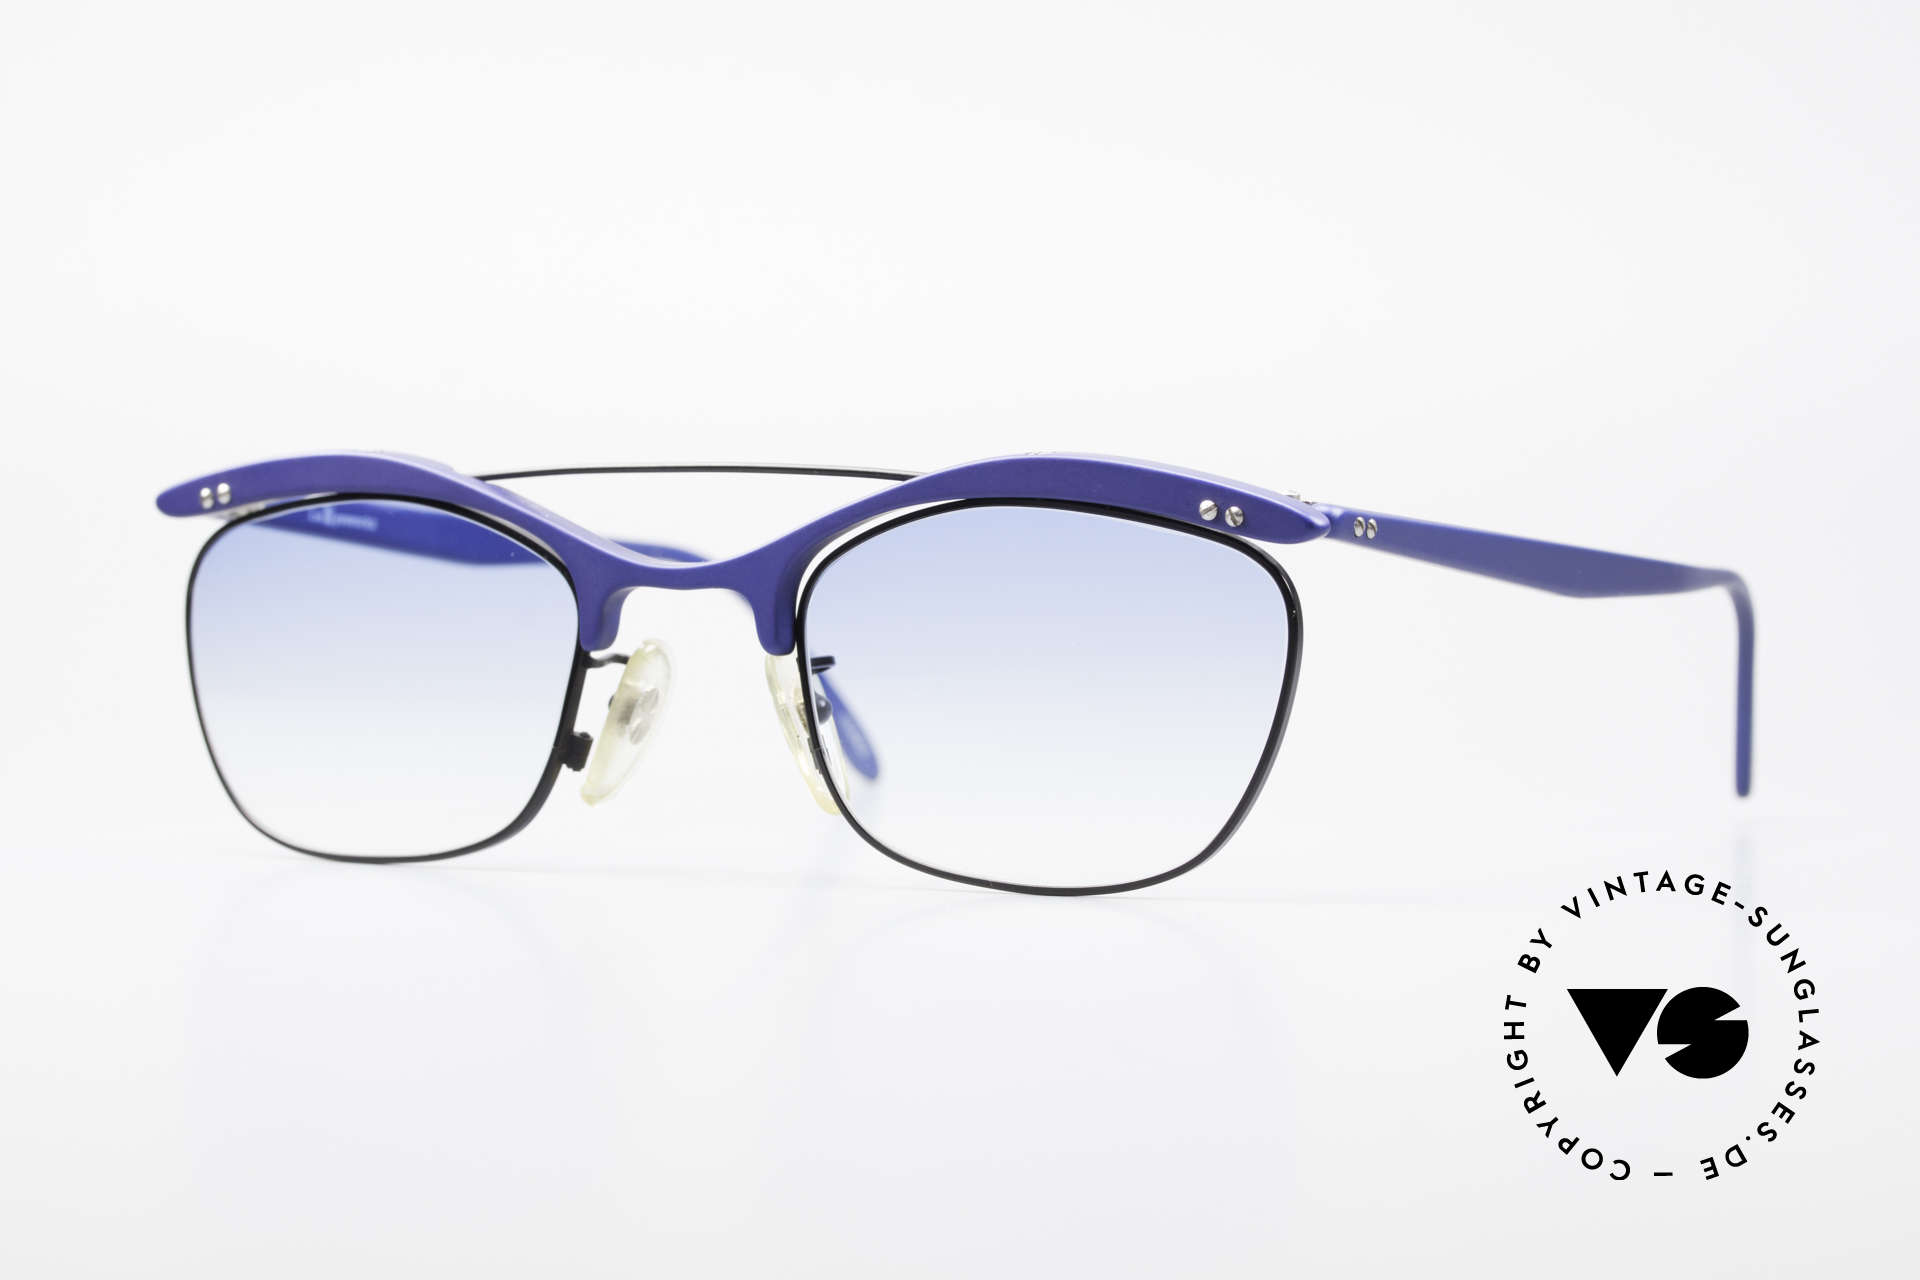 L.A. Eyeworks PLUTO III Vintage Frame No Retro Specs, L.A. Eyeworks: limited-lot productions from Los Angeles, Made for Men and Women